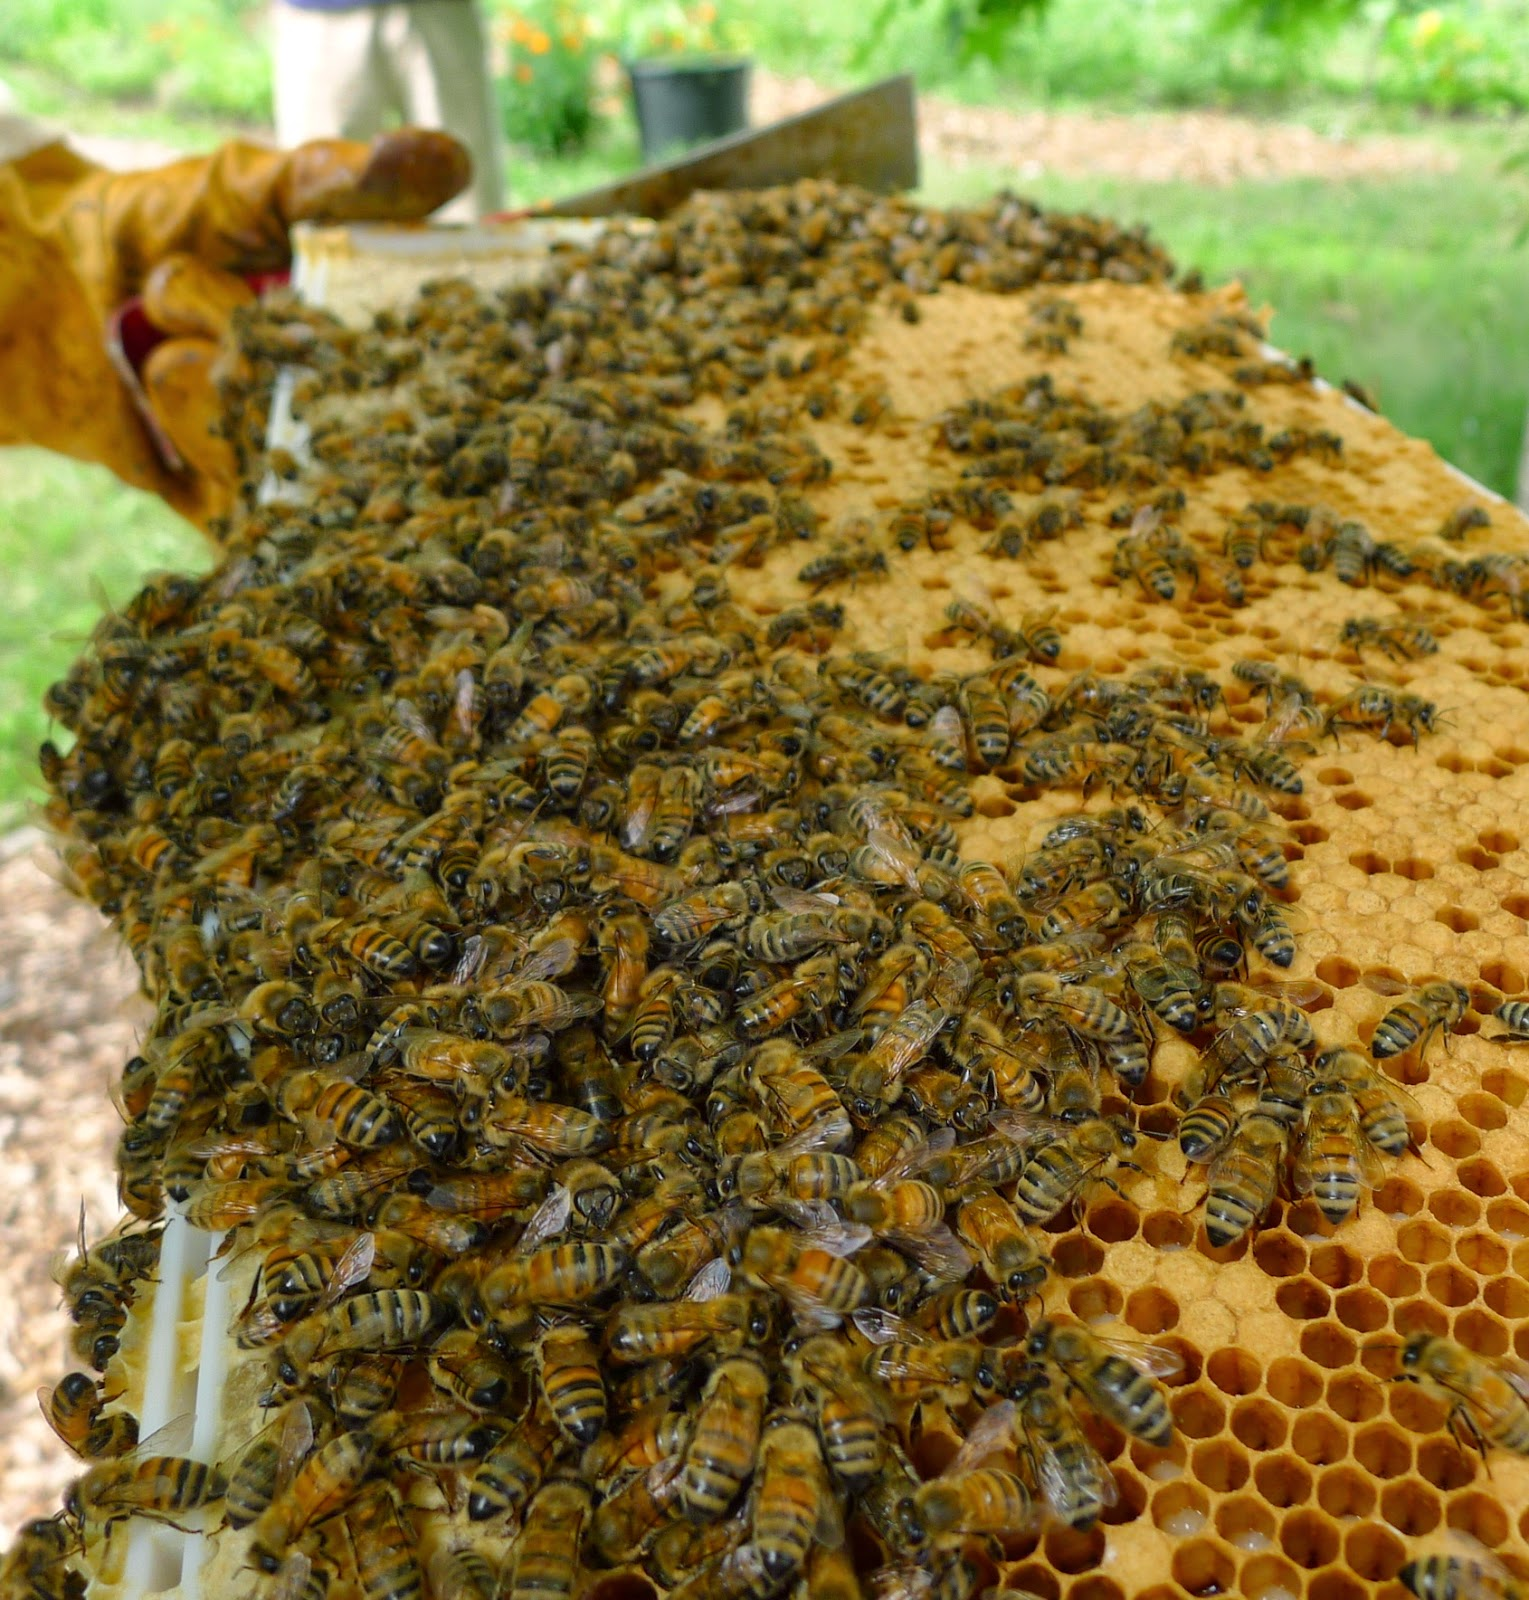 Hive frame with capped honey and brood, URI Master Gardeners, Edible Forest Garden